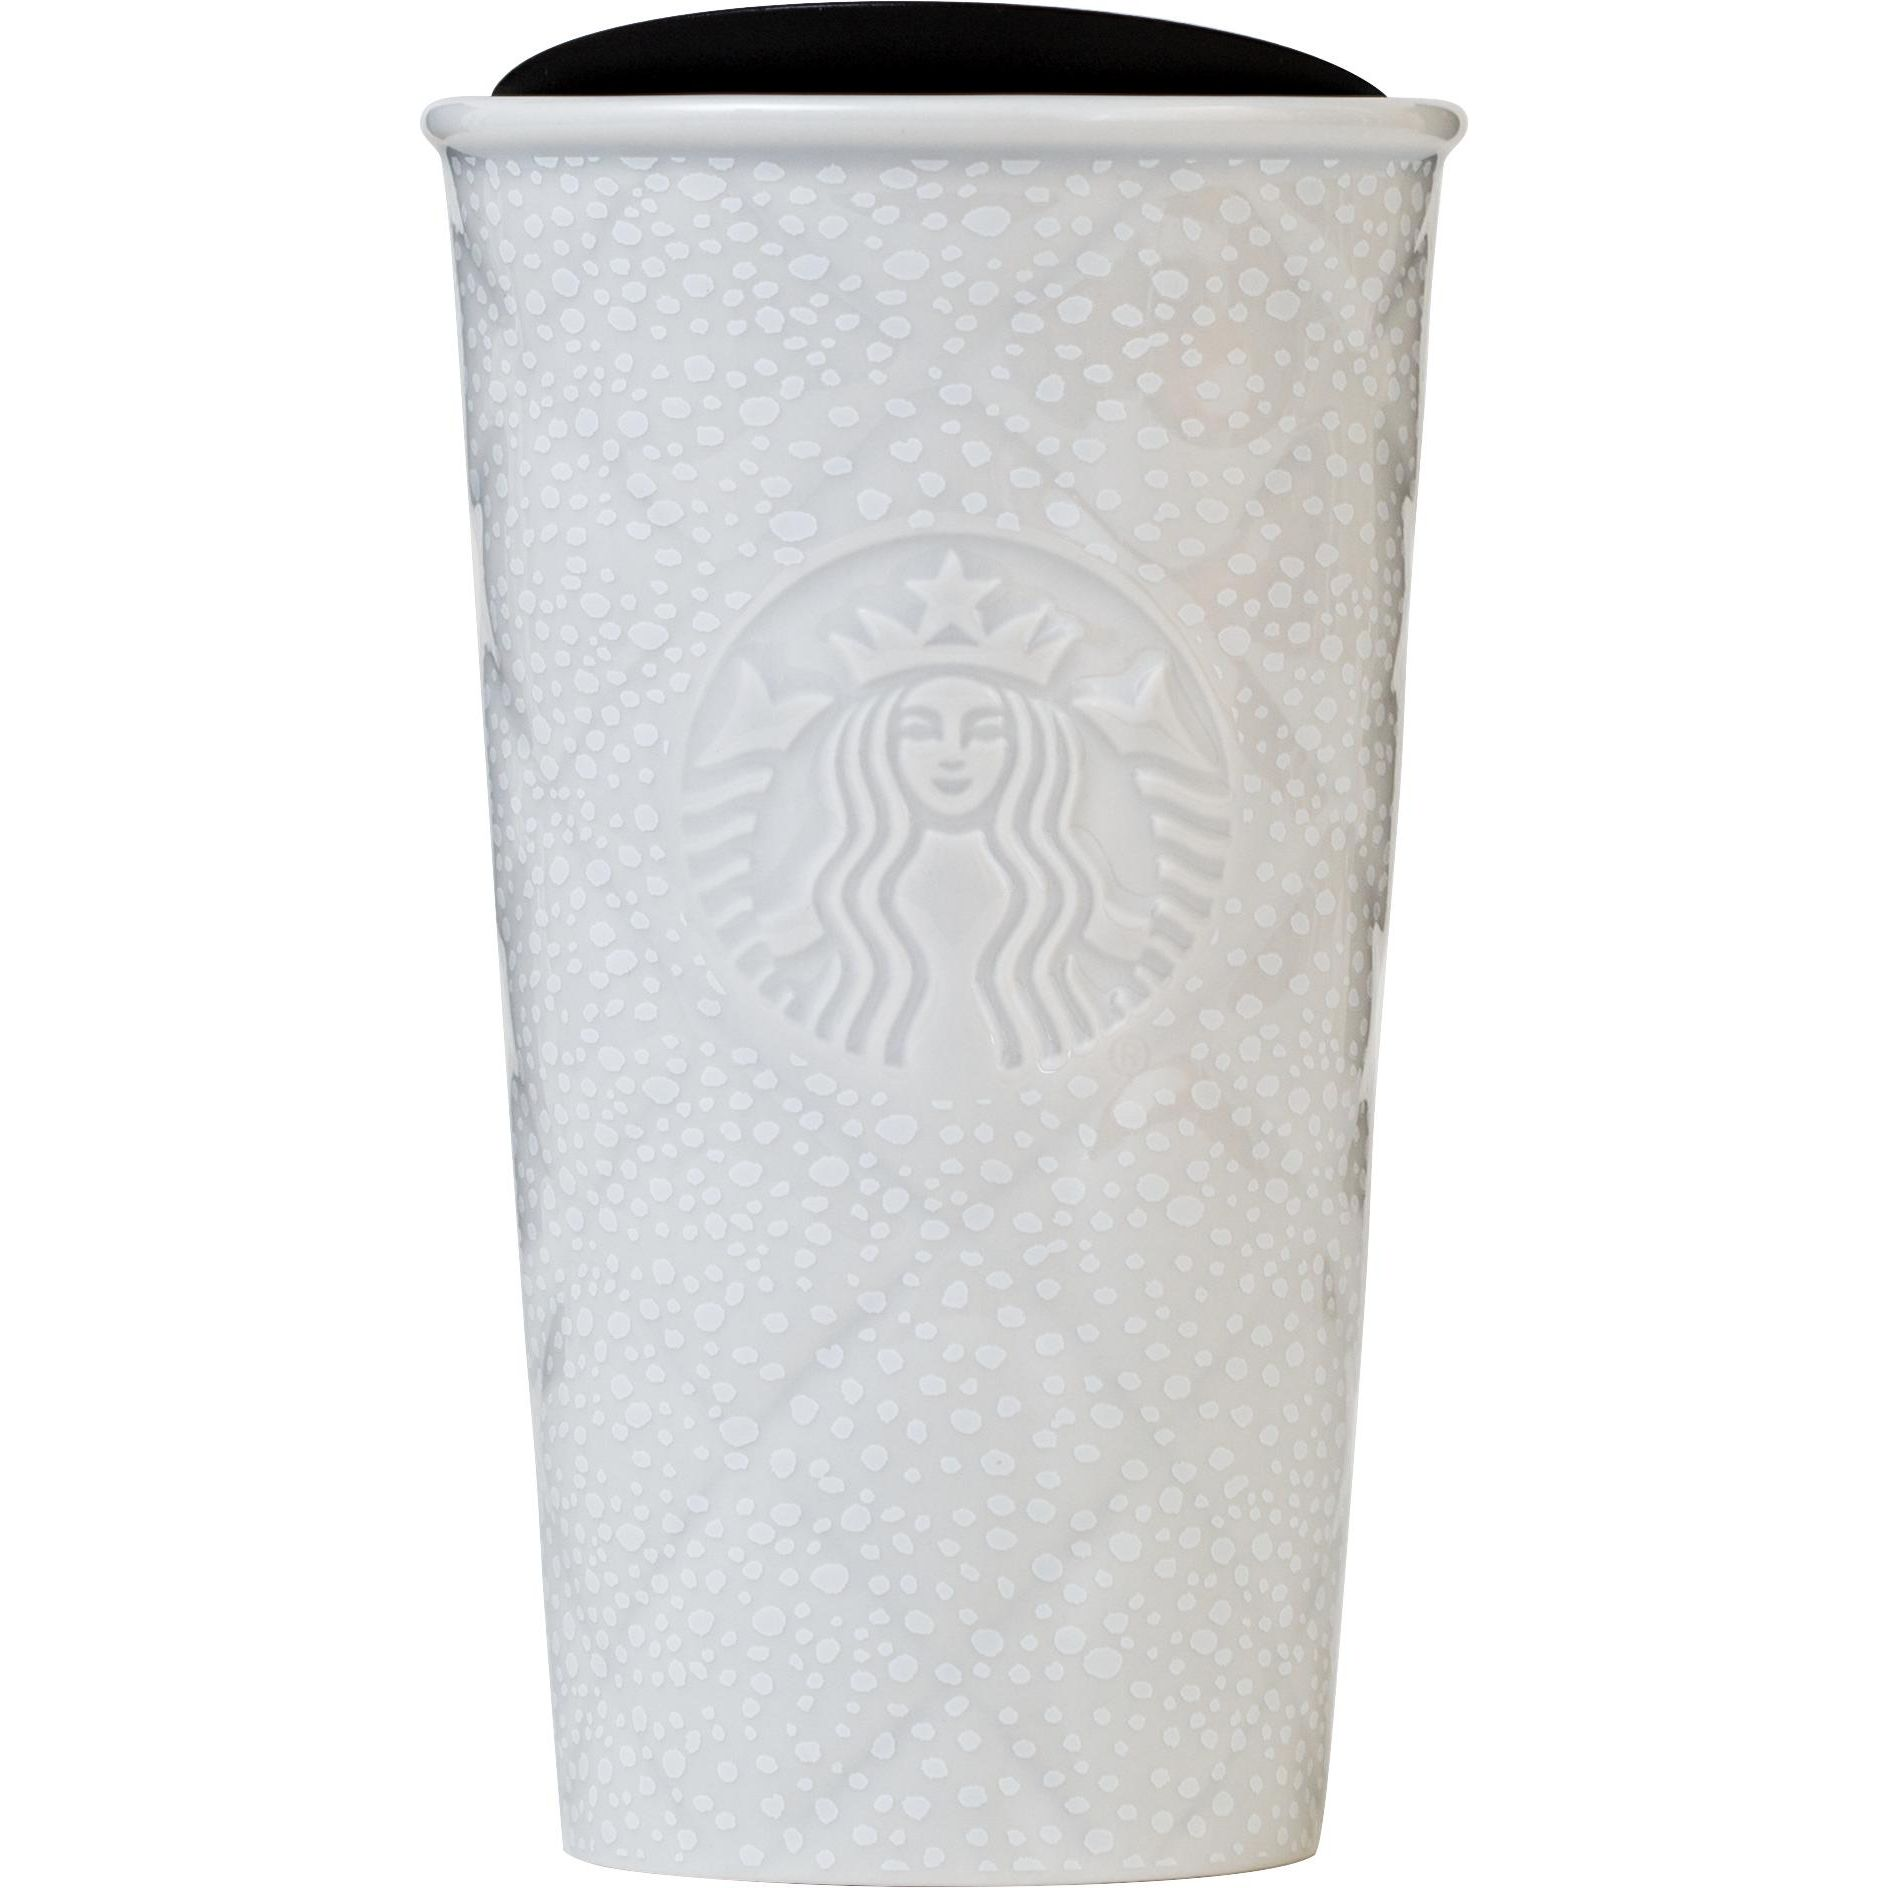 mugs-sirenes-starbucks-3